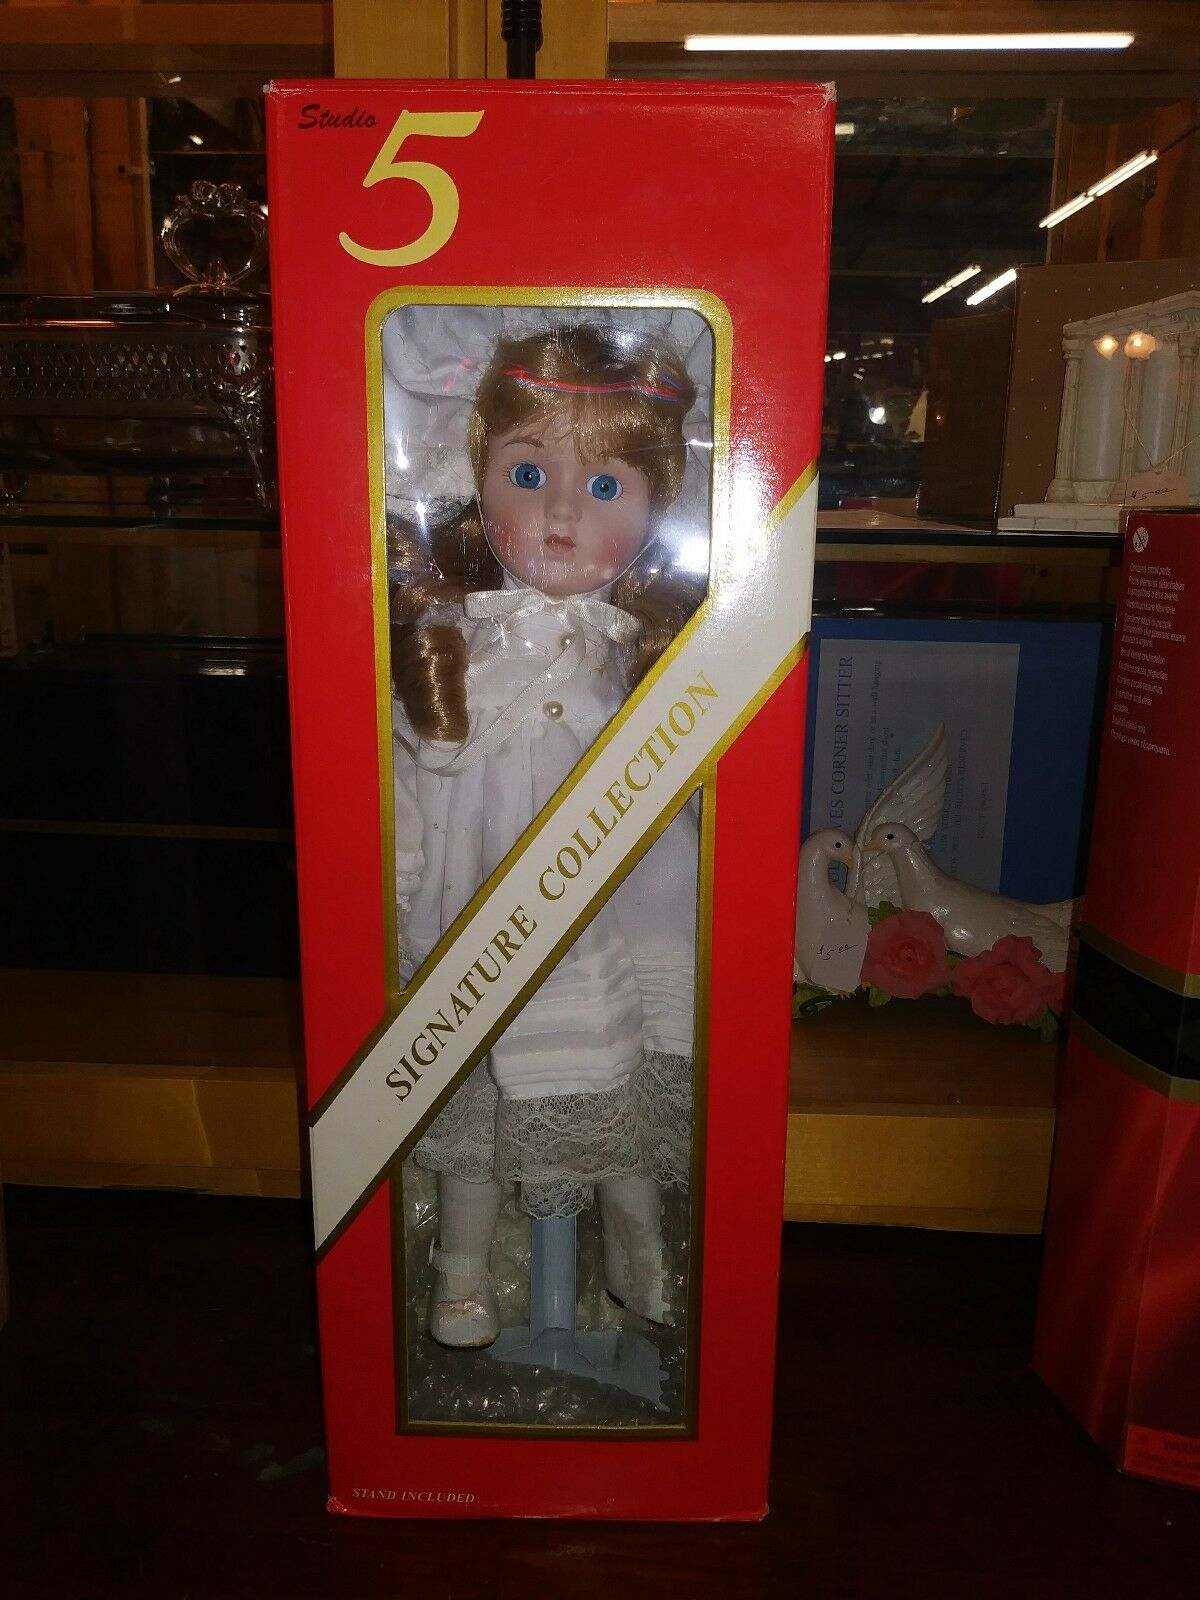 Heritage Signature 5 Collection. Porcelain doll new with stand in box